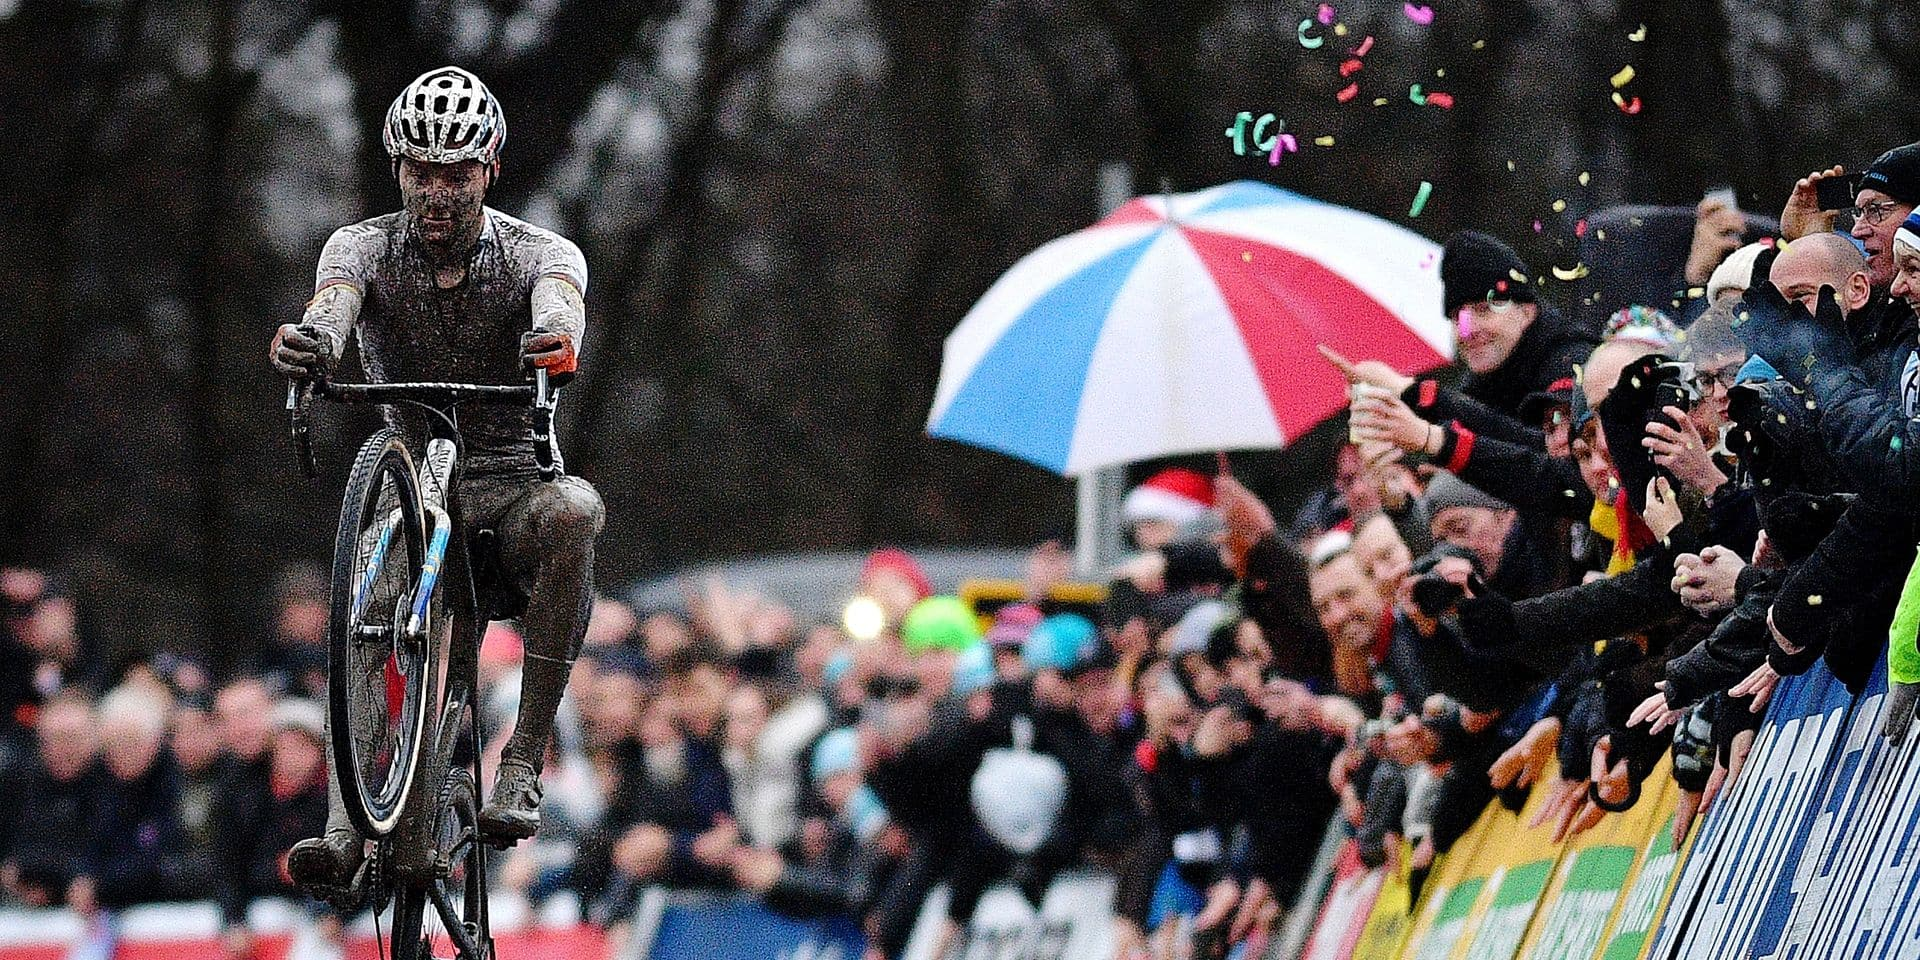 Dutch Mathieu Van Der Poel celebrates as he crosses the finish line to win the men elite race of the World Cup cyclocross in Namur, 6th stage of the UCI World Cup competition, in NamurSunday 23 December 2018. BELGA PHOTO DAVID STOCKMAN